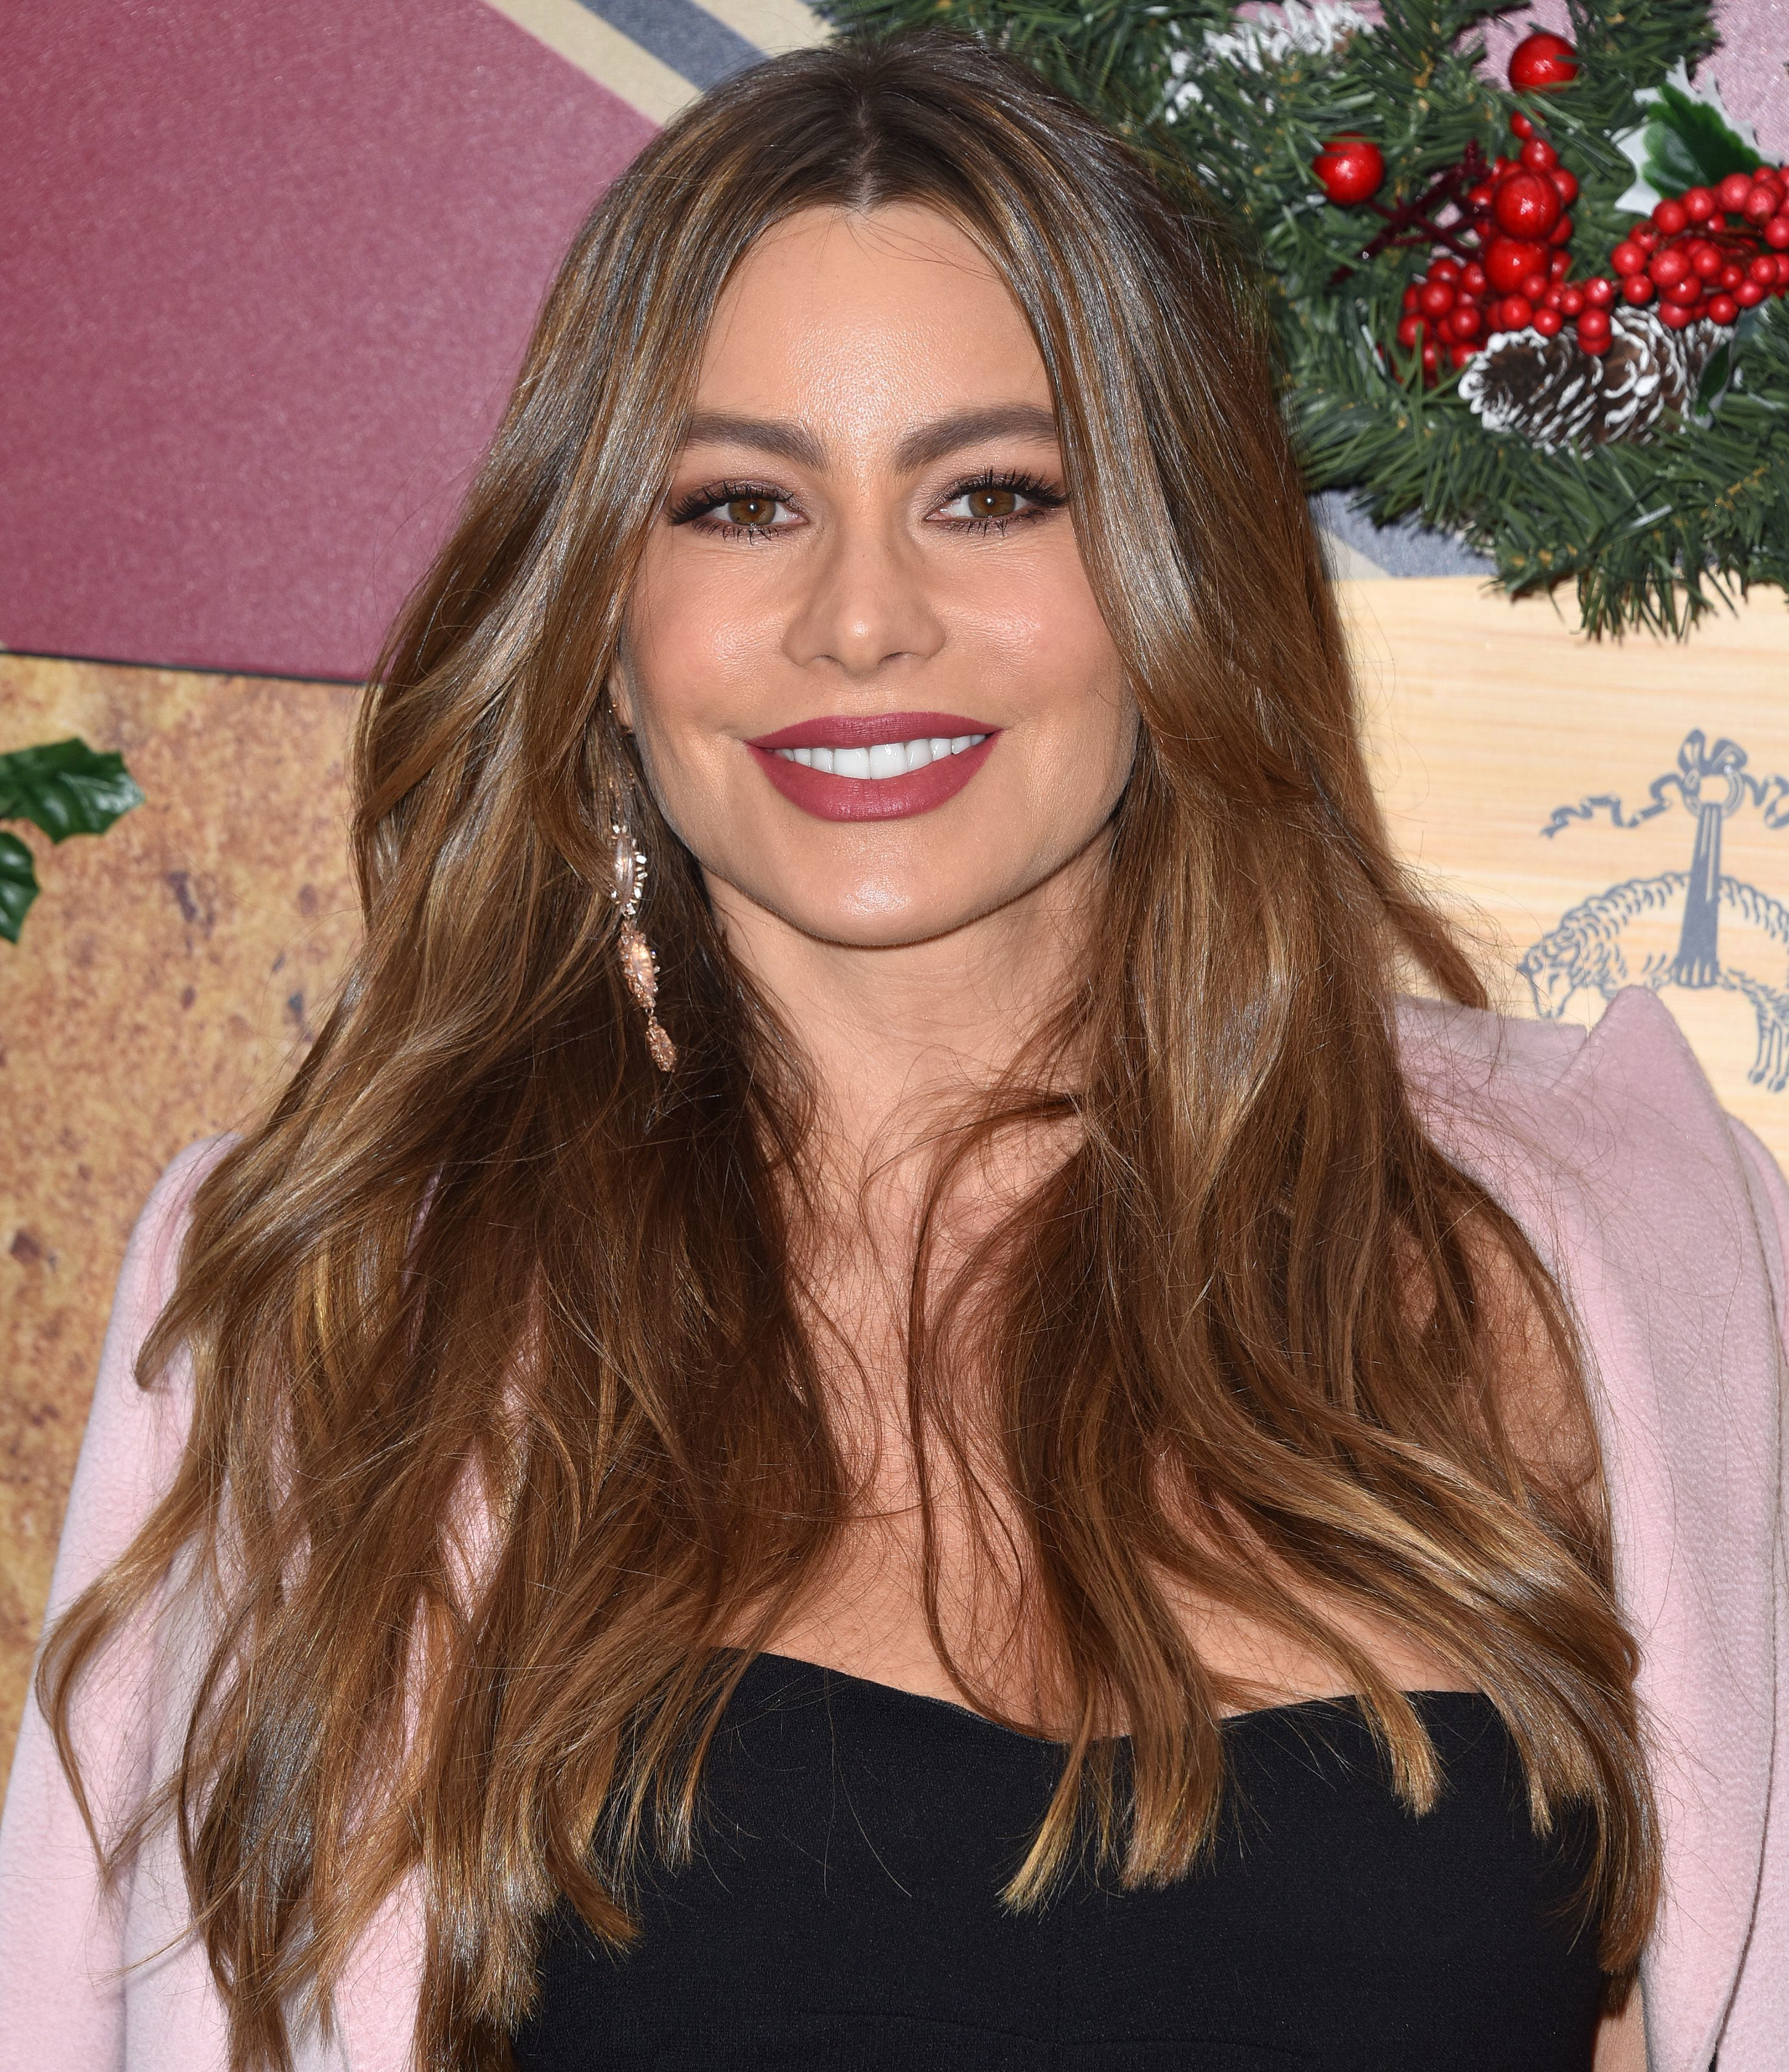 Sofia Vergara attends the Brooks Brothers holiday celebration in Los Angeles on Dec. 9, 2018.